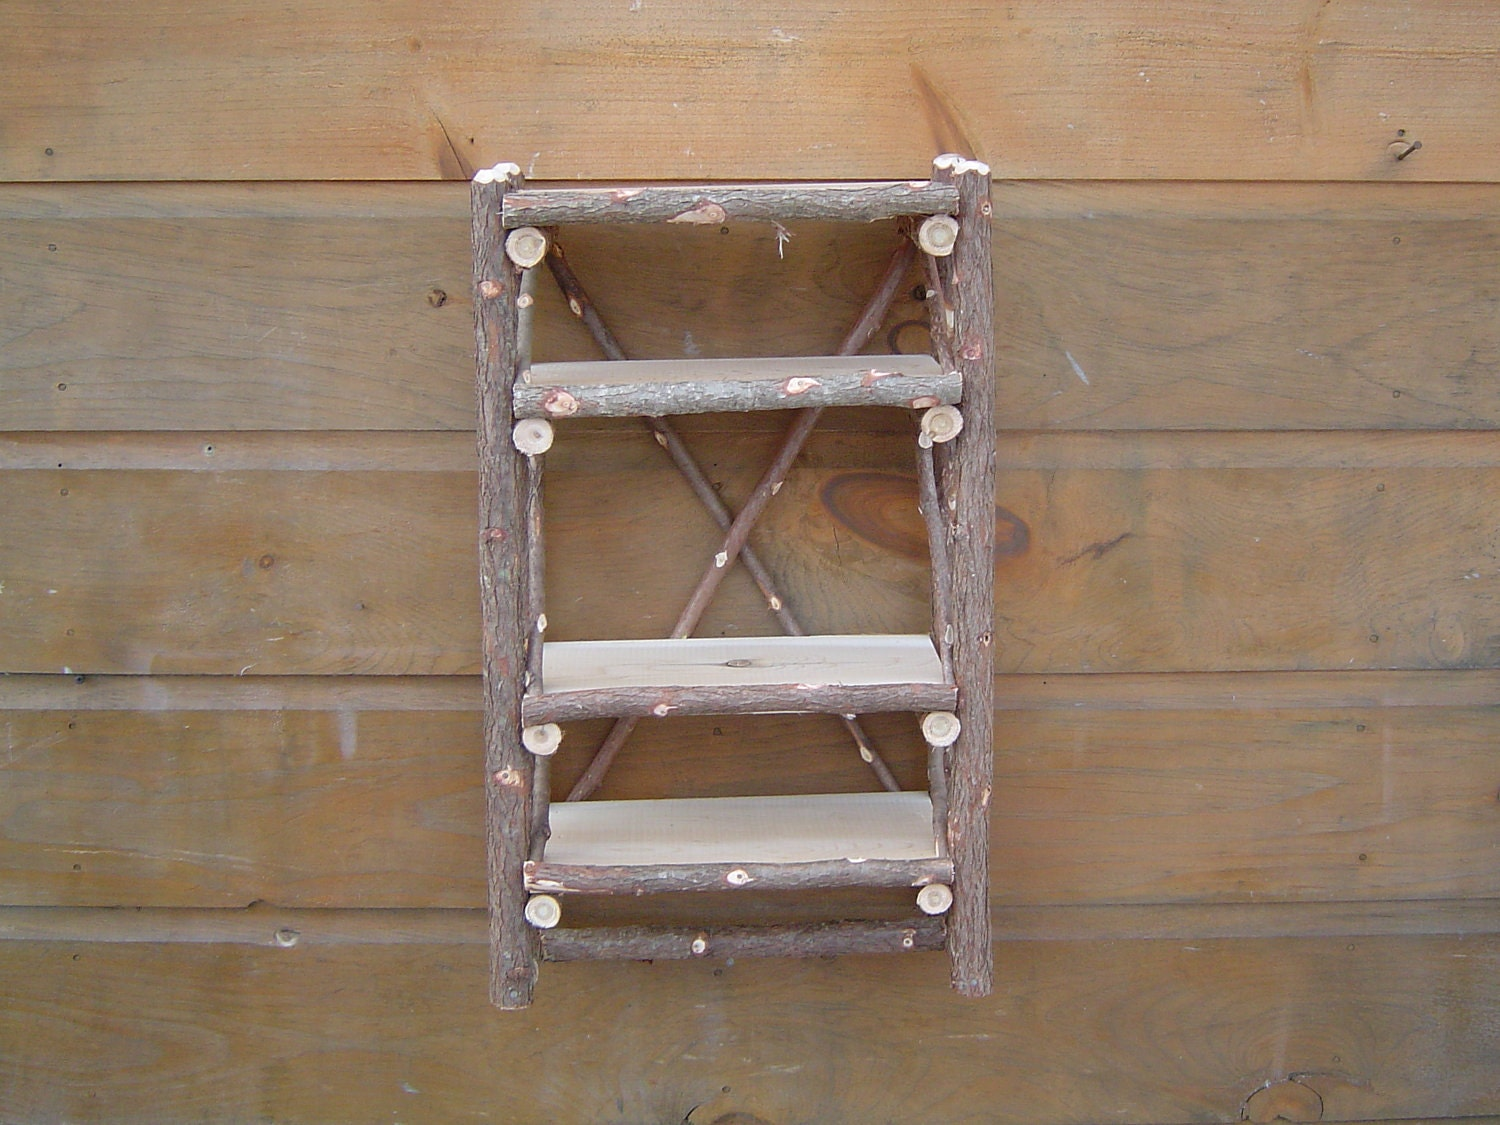 Maine Rustic Camp Bathroom Wall Shelf Organizer By Logcabindecor